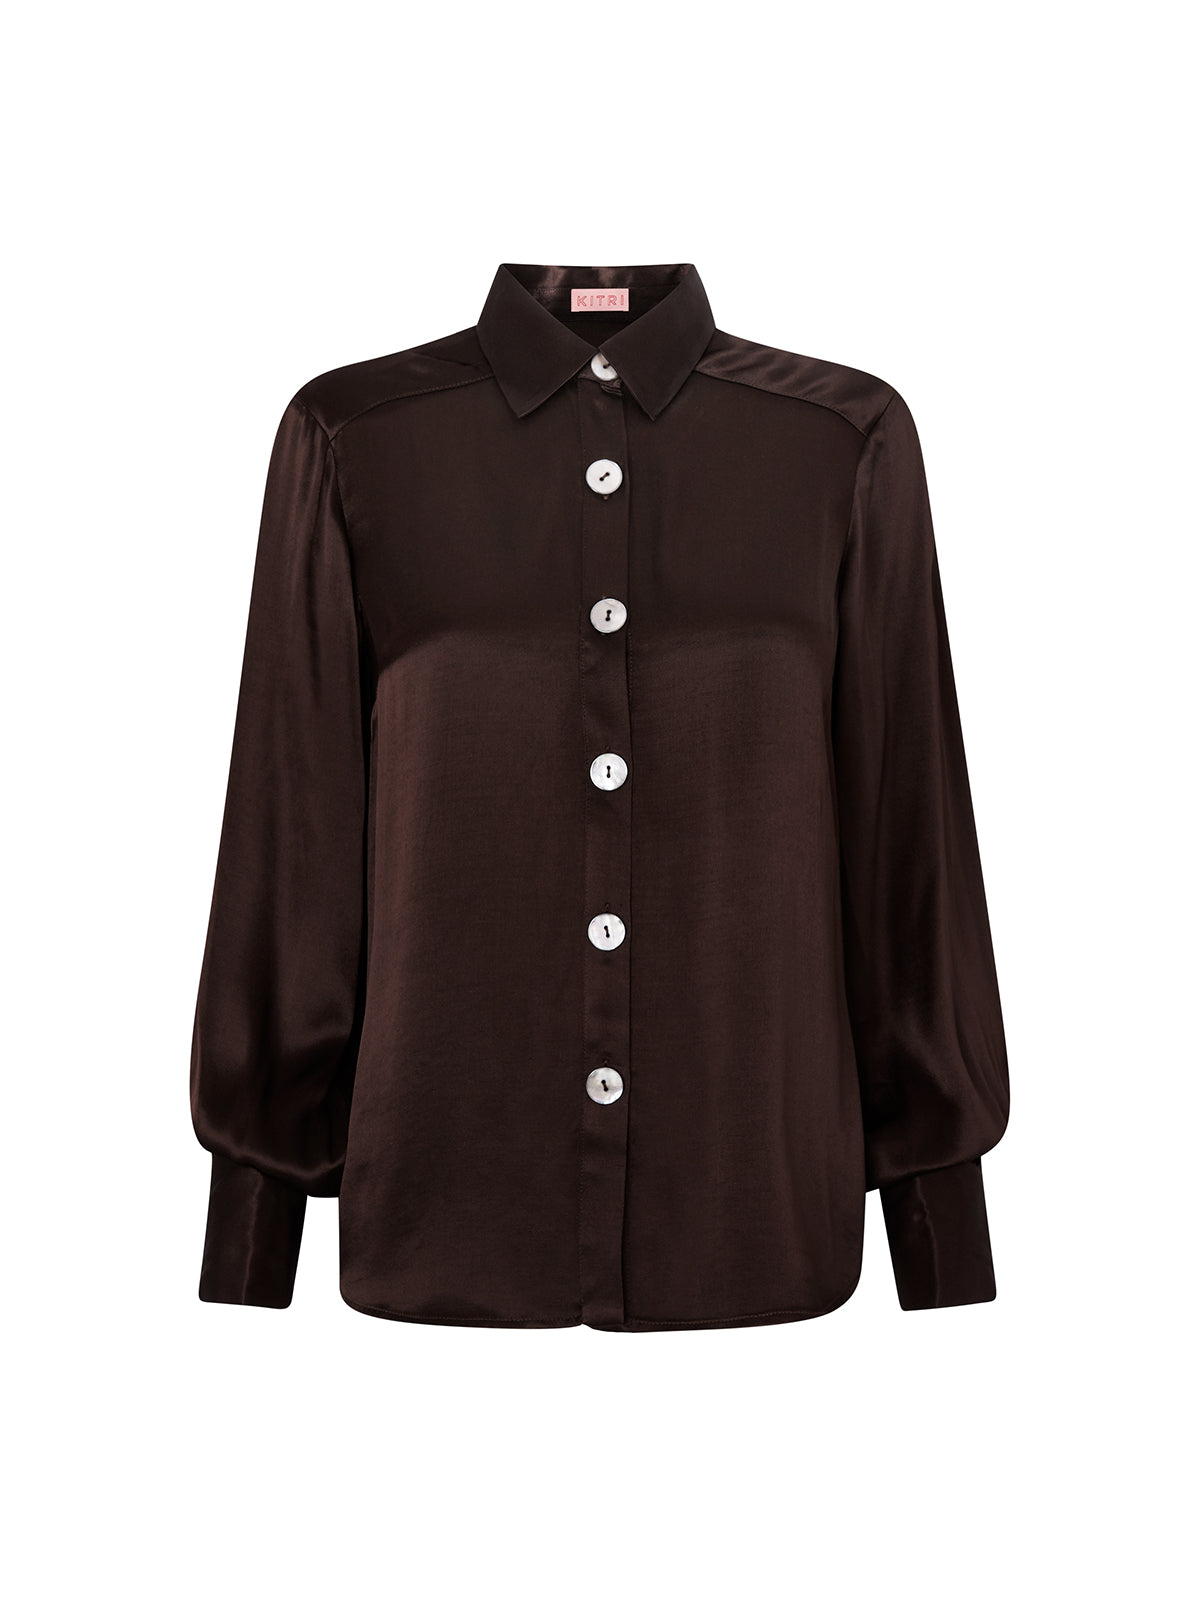 Joanna Chocolate Blouse